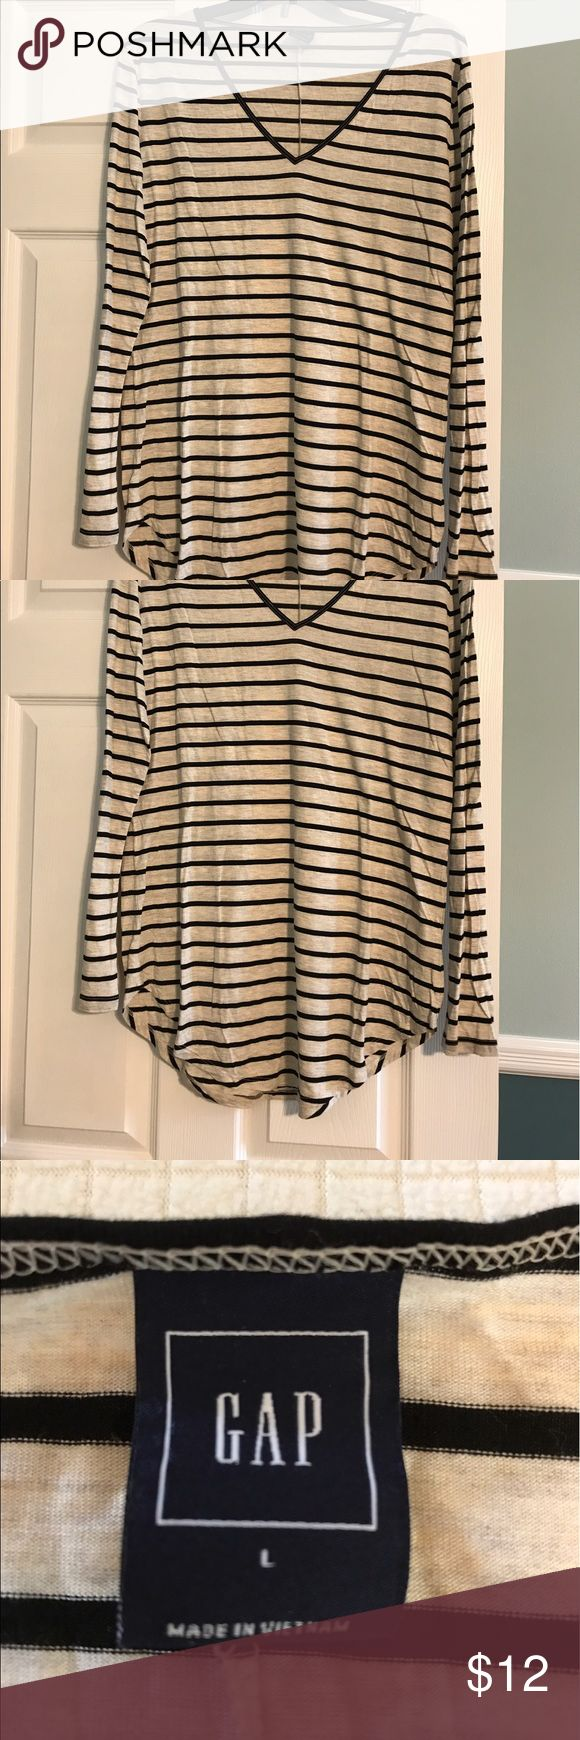 Long sleeved black and white long tshirt Longer black and white striped top that can easily be worn with leggings. Vneck top. GAP Tops Tees - Long Sleeve